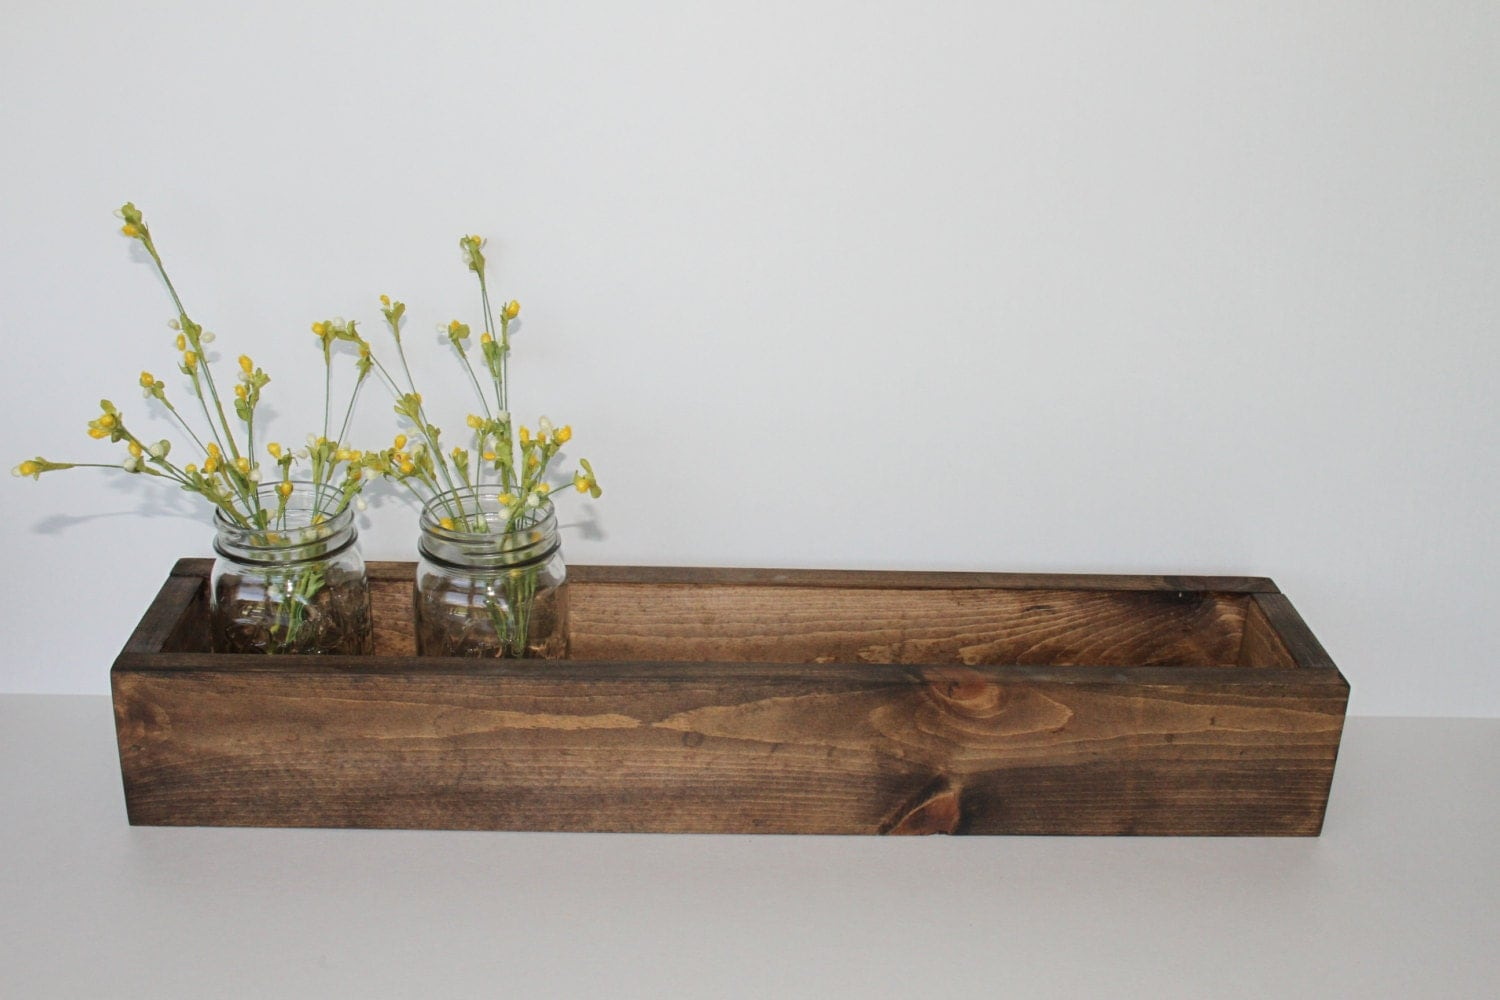 Wood flower box rustic planter